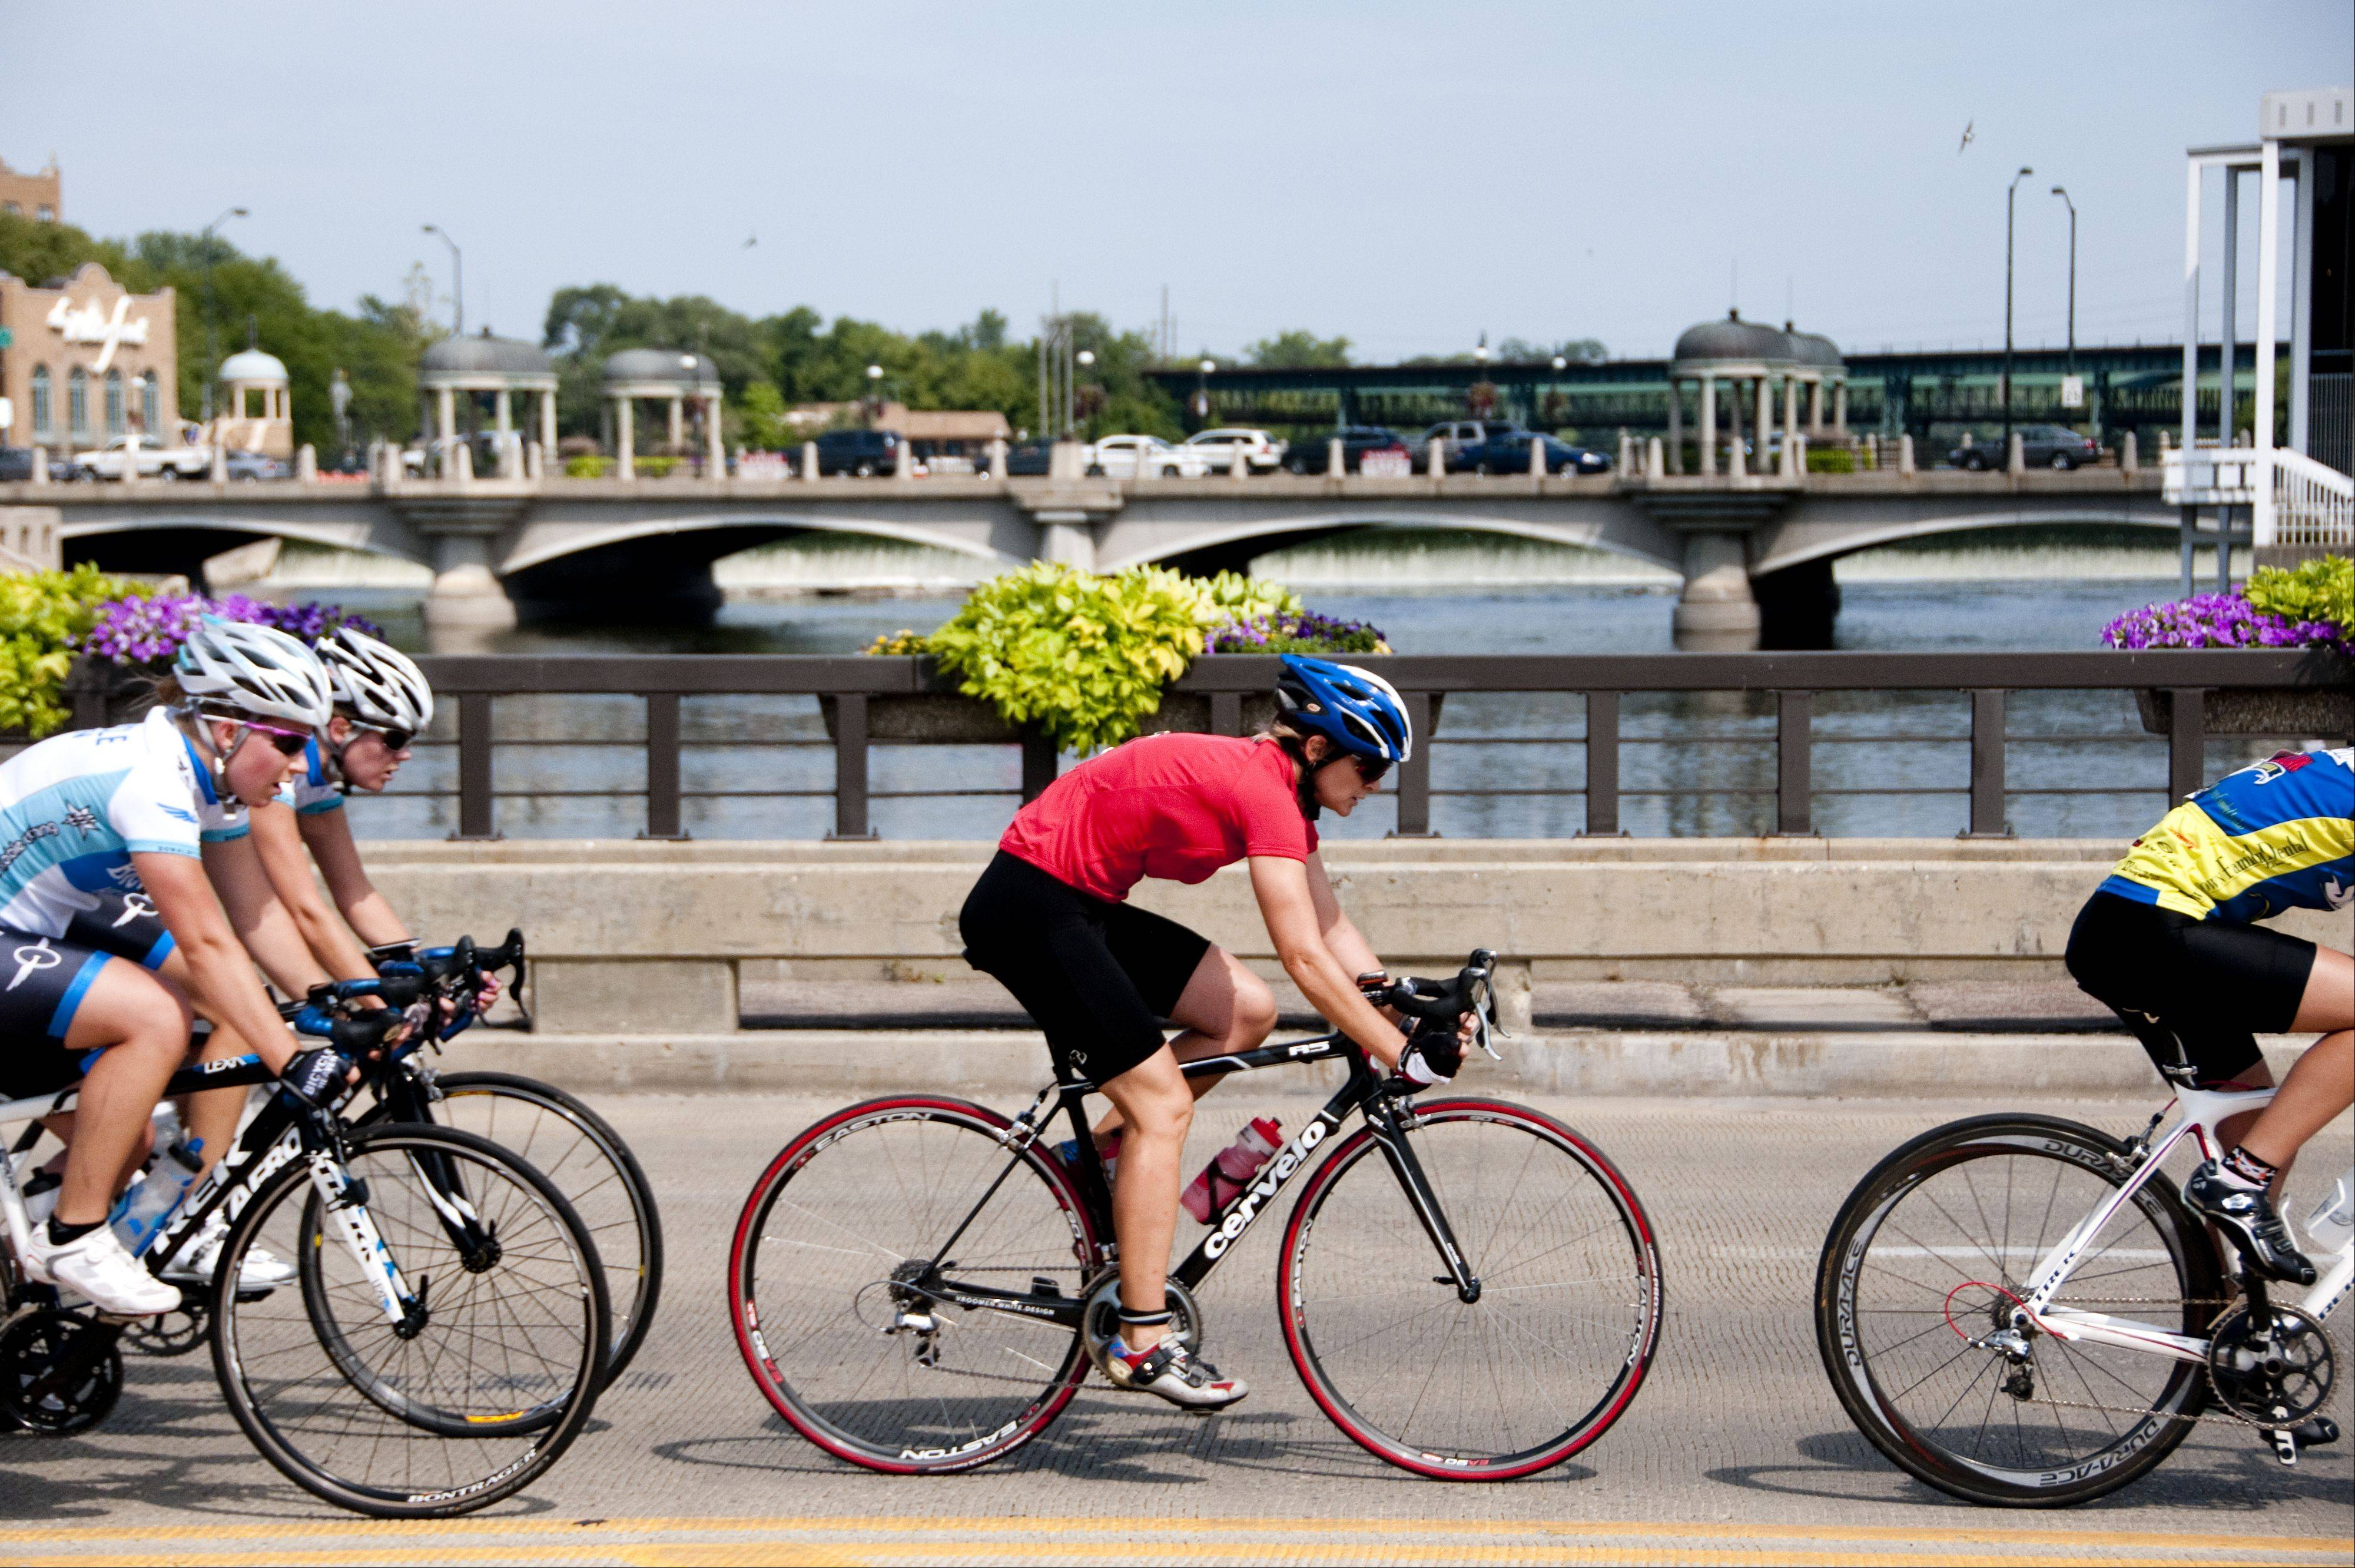 Competitors in the women�s category 3/4 of the Sammy�s St. Charles Prairie State Criterium race across the Fox River Sunday in downtown St. Charles. The race began and ended at Sammy�s Bike Shop using 1st Street, Illinois Avenue and Riverside Avenue as the course.